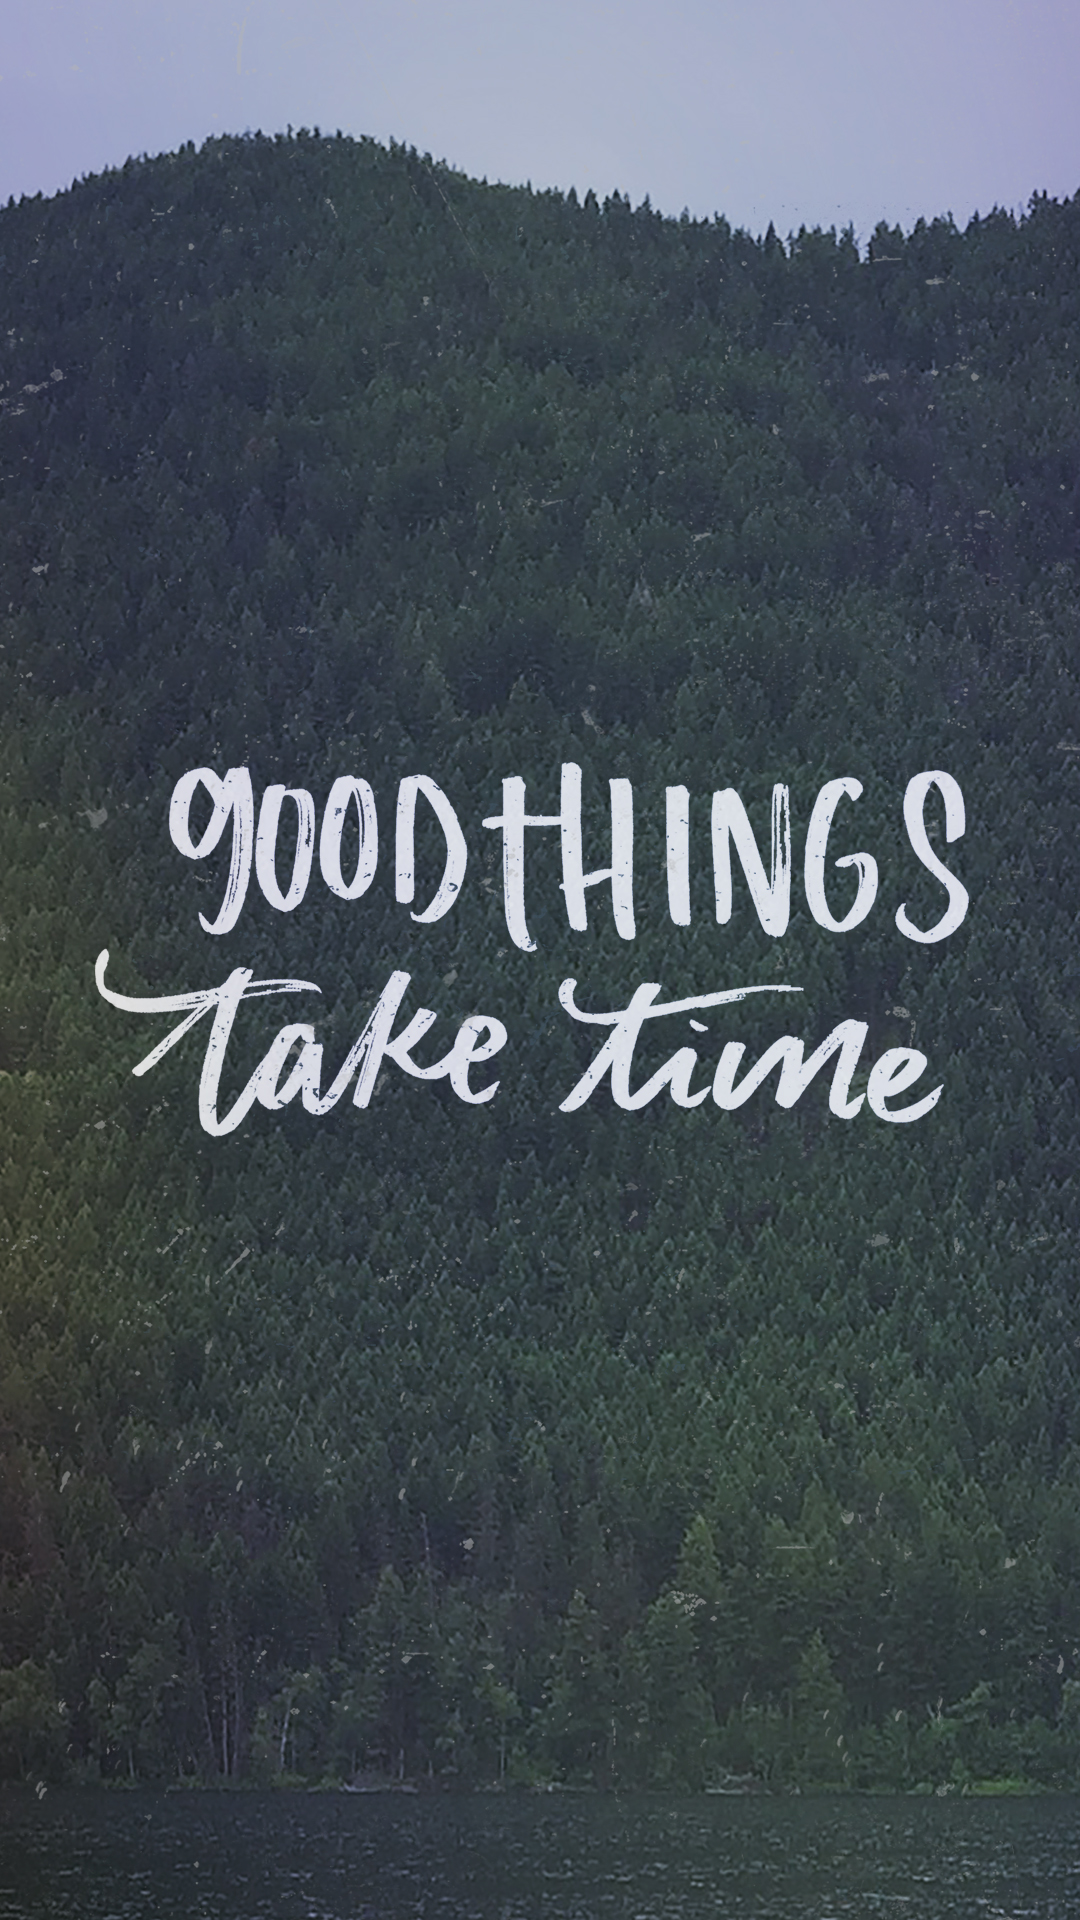 Friends Series Quotes Wallpaper Good Things Take Time April Tech Wallpapers Lemon Thistle